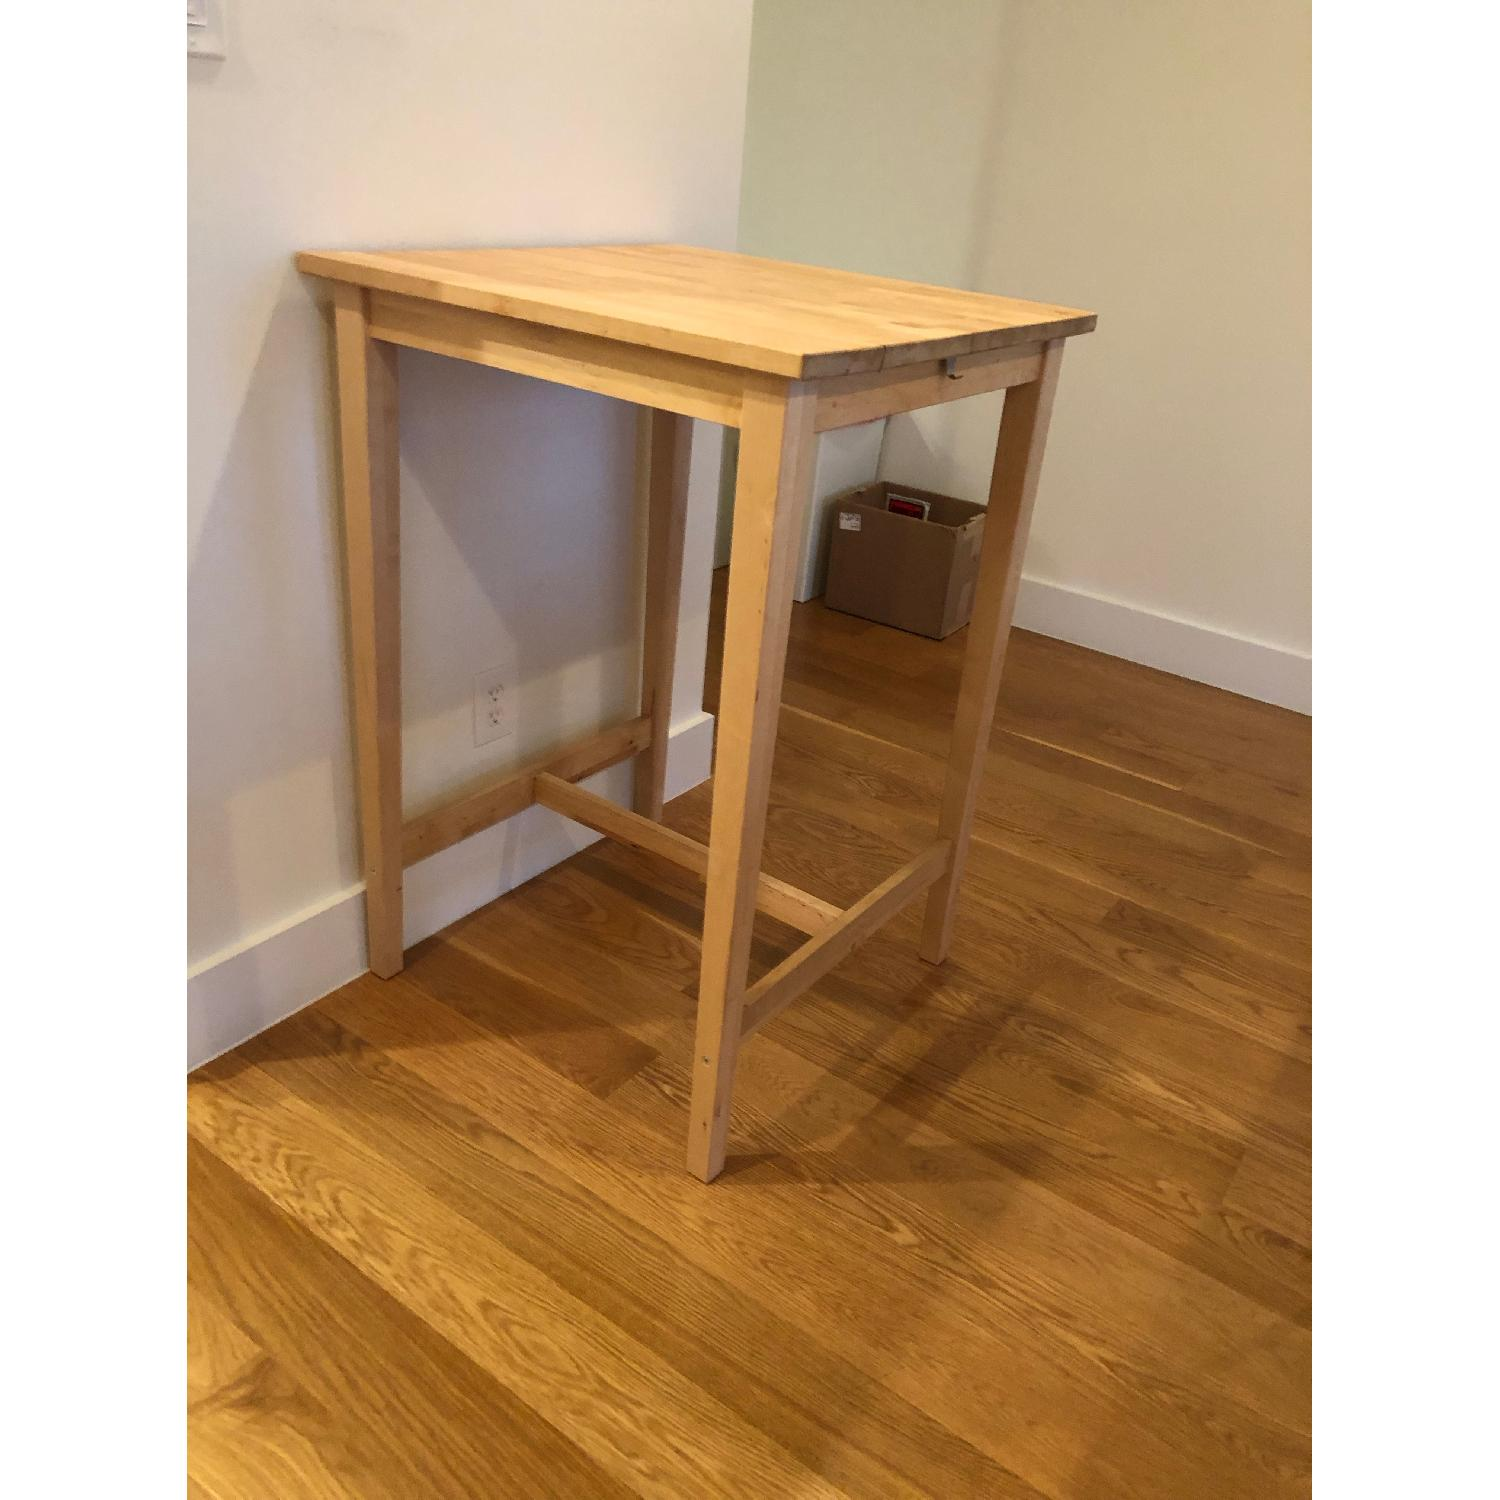 Ikea Bjorkudden Counter Height Table-0